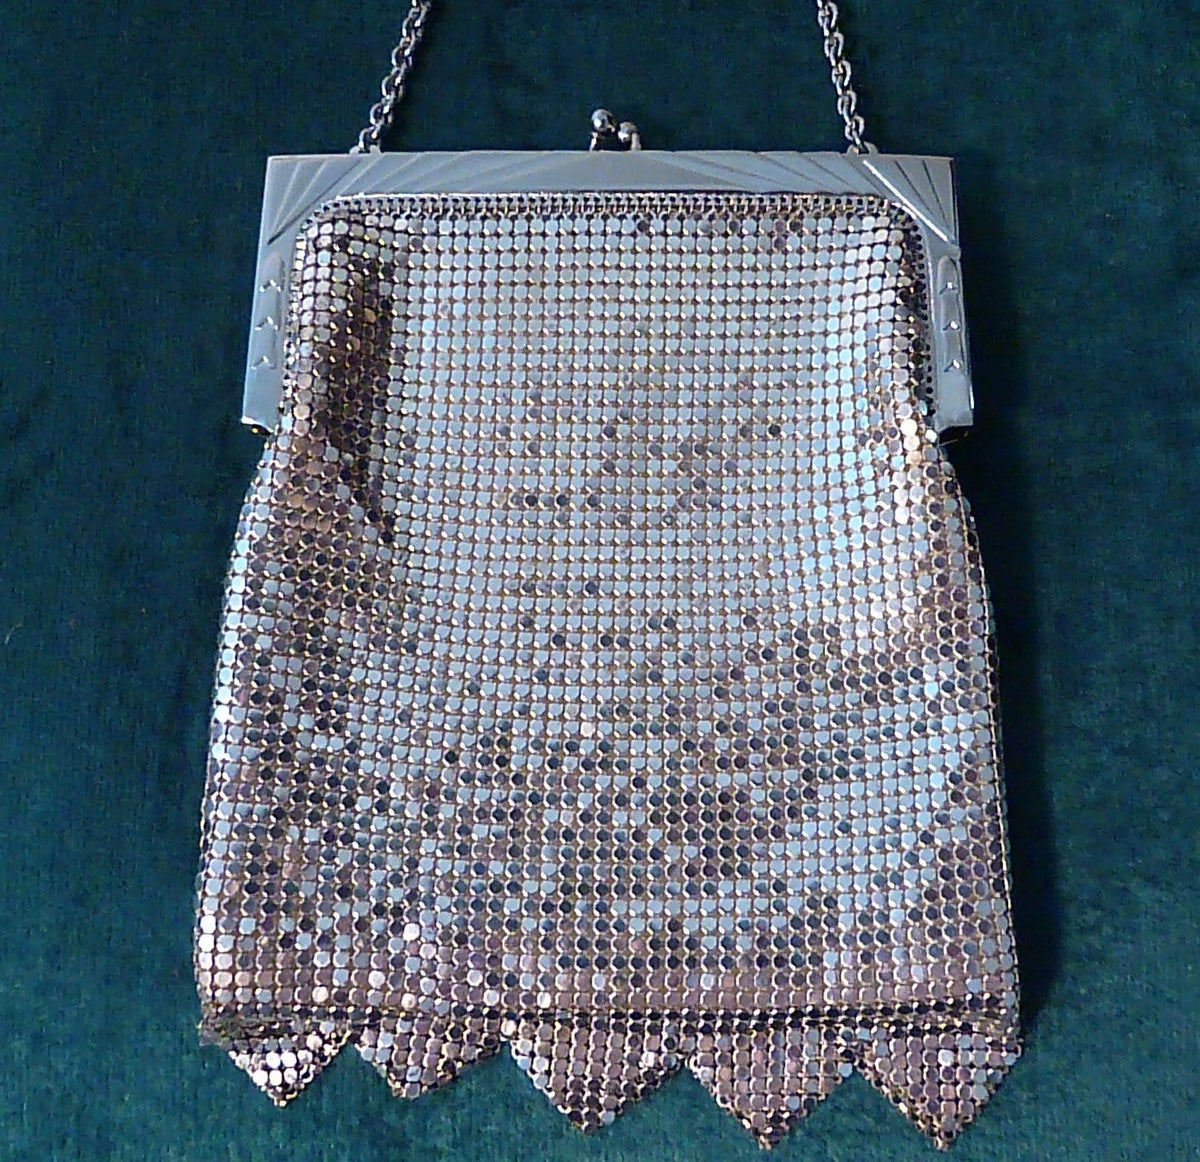 Silver tone Whiting & Davis mesh bag silver evening bags retro bridal accessories 1960s - The Vintage Compact Shop